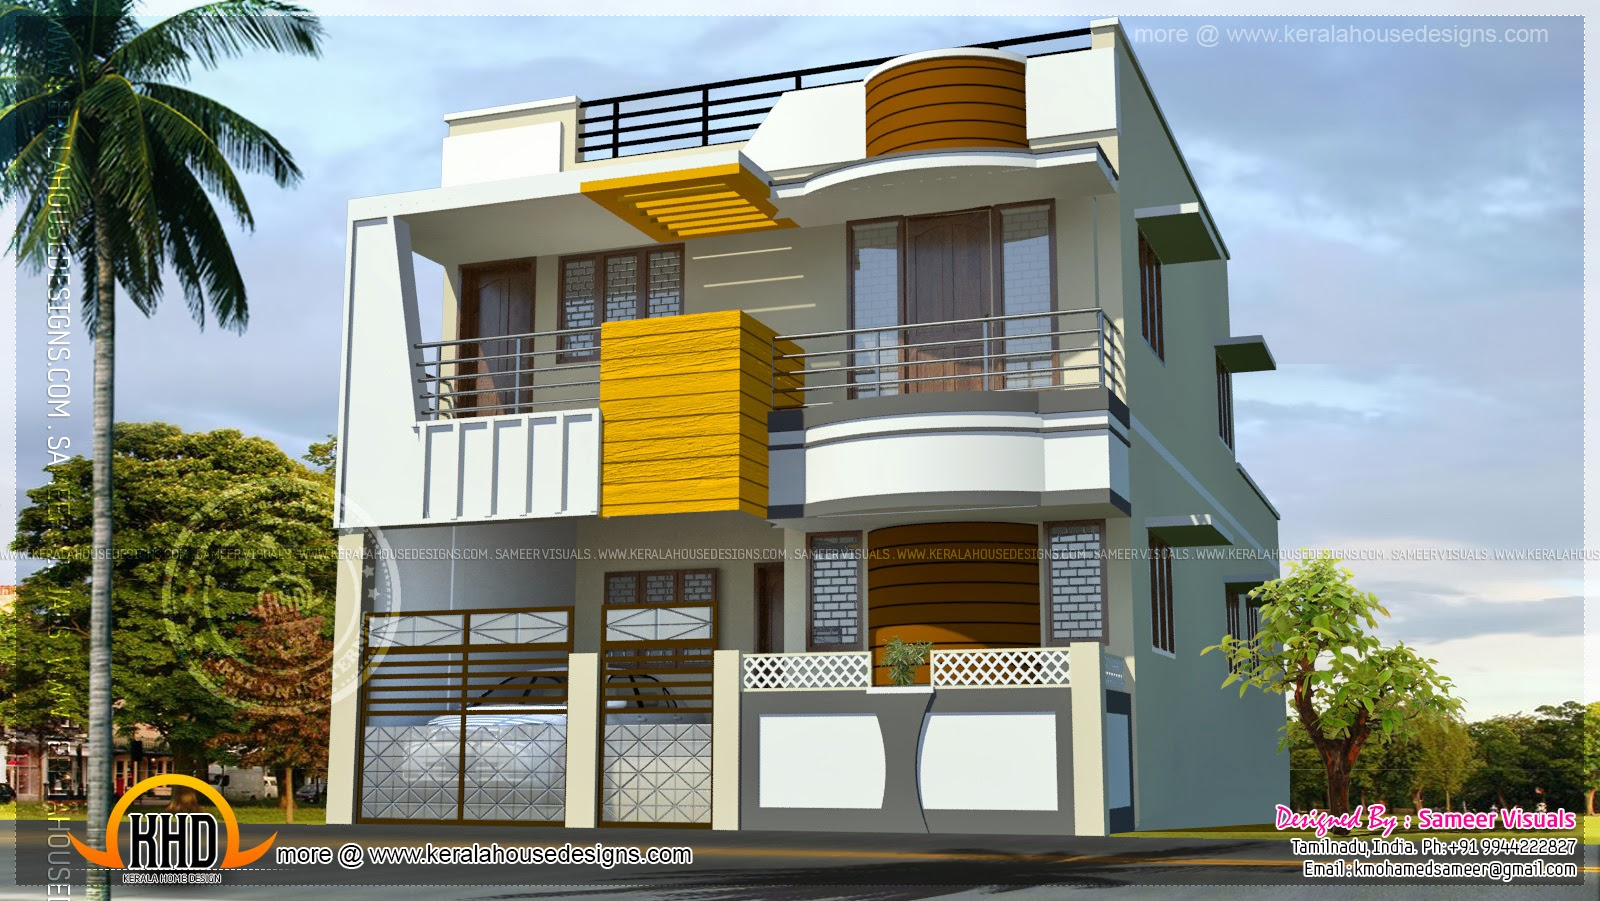 January 2014 kerala home design and floor plans for Architectural plans for houses in india